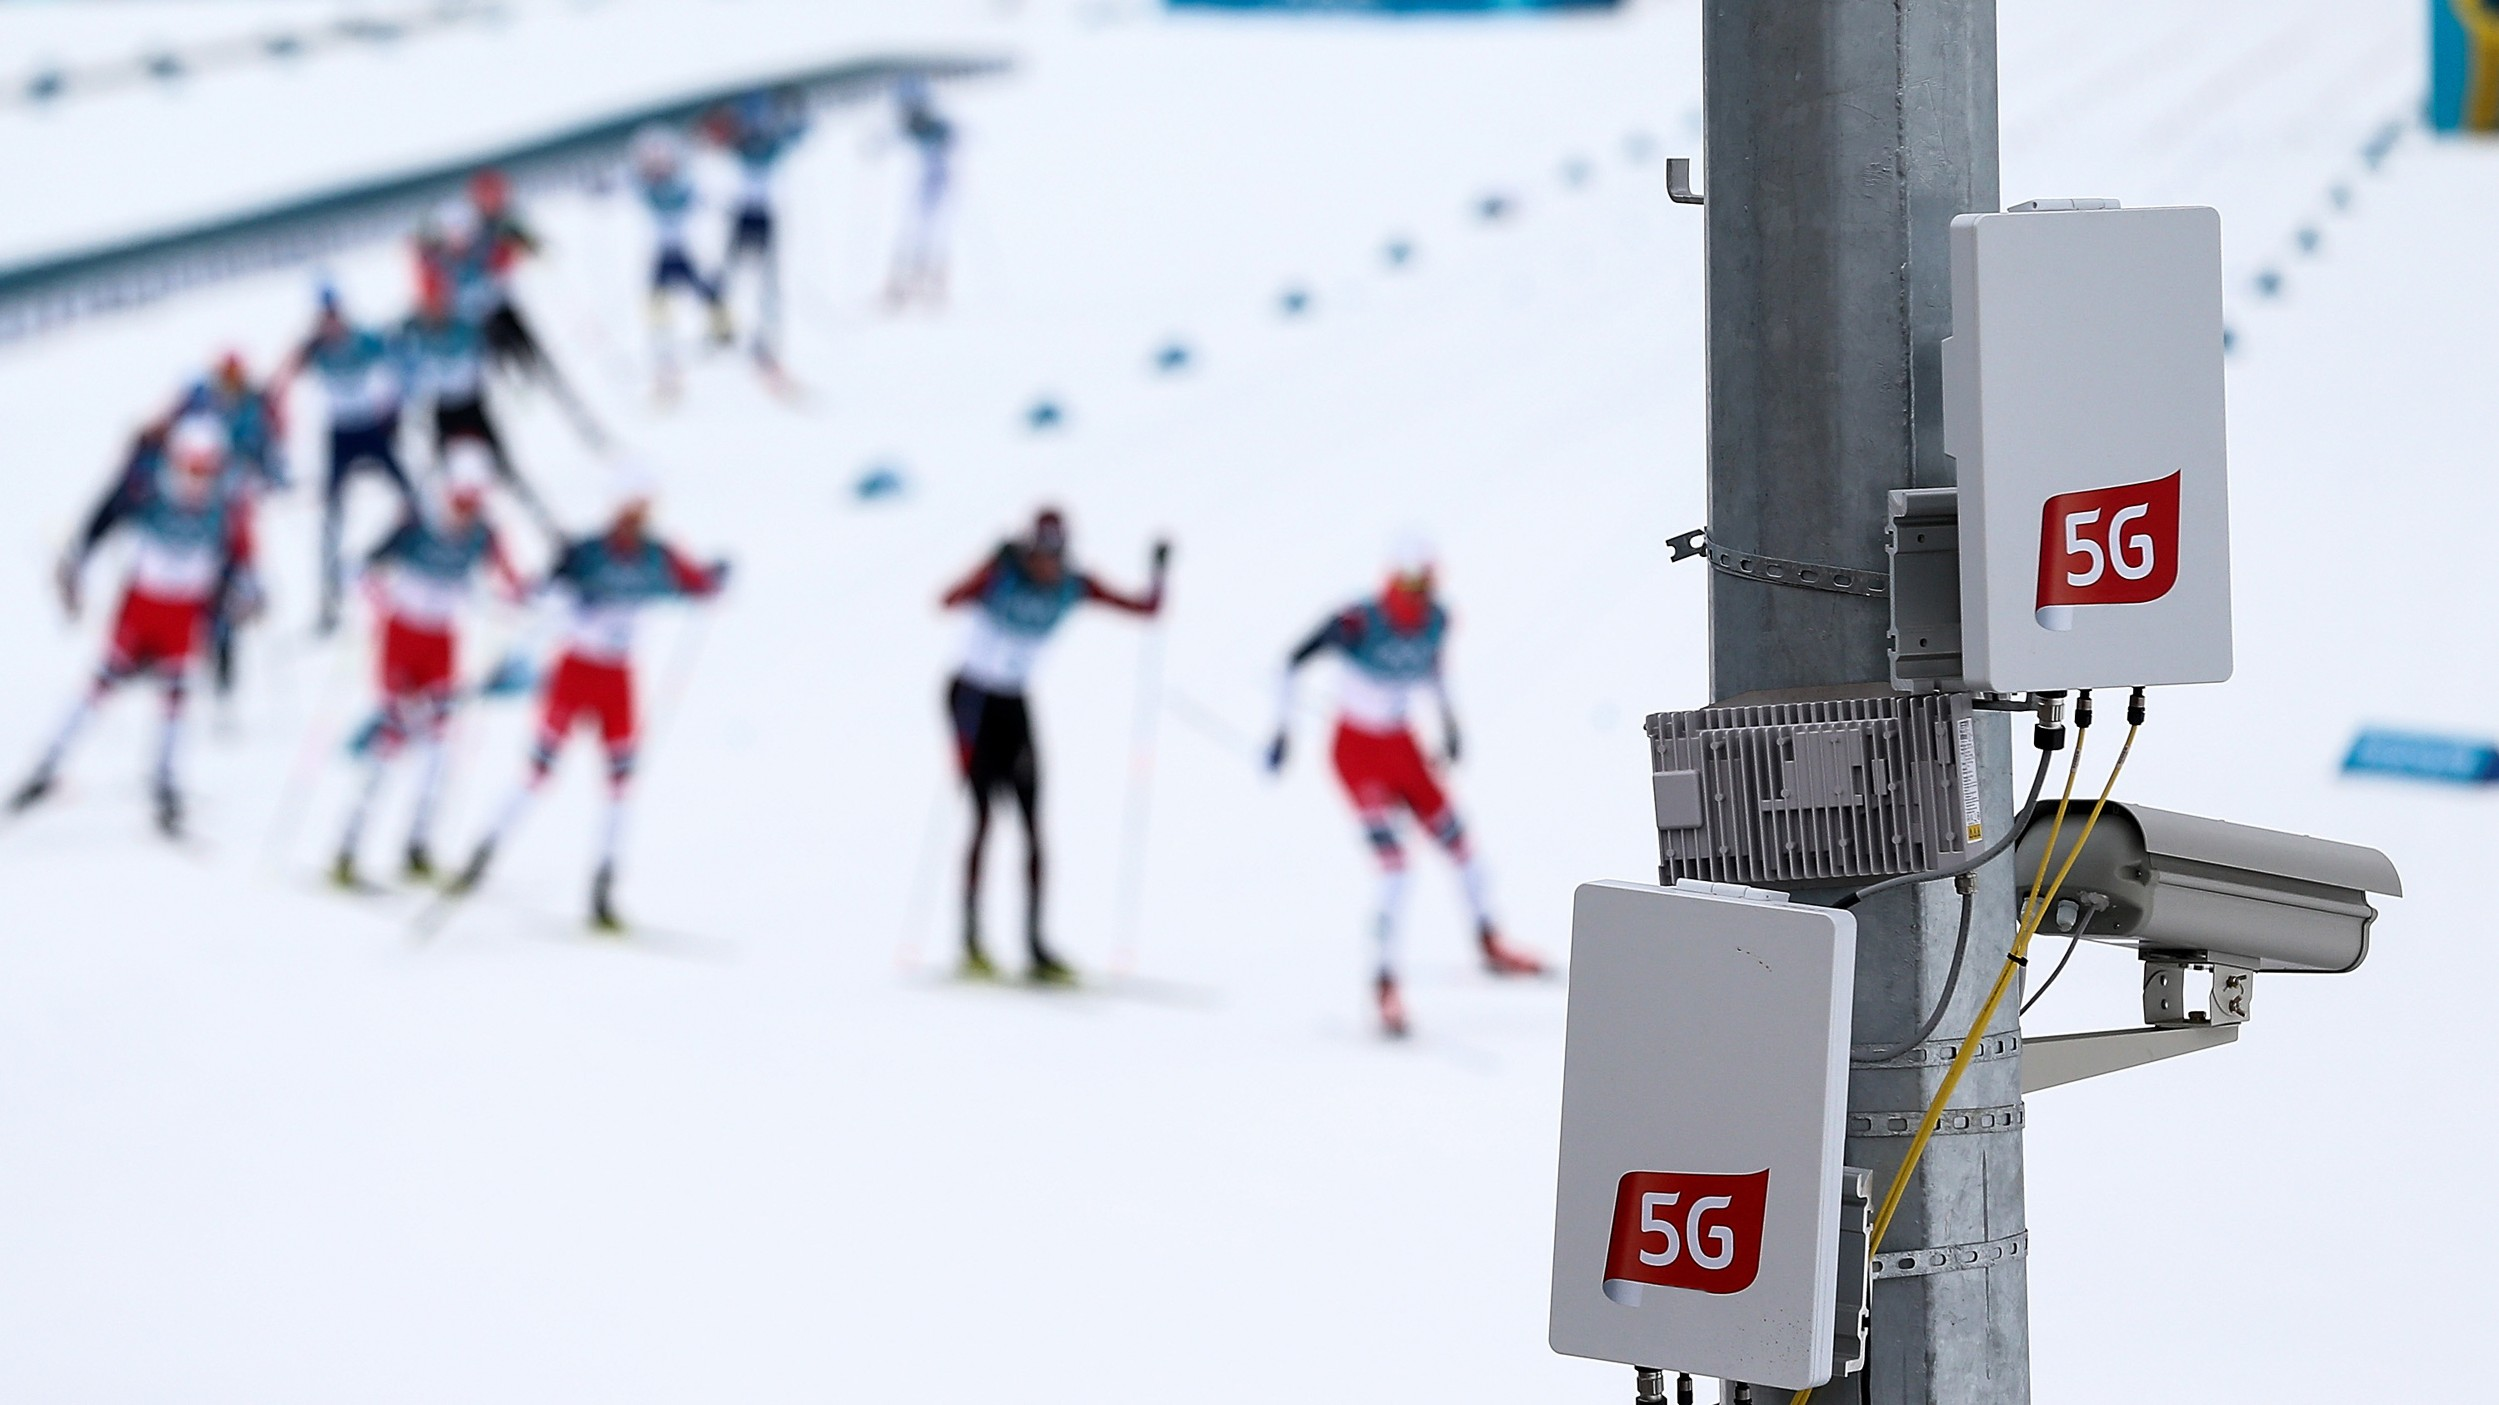 Getty Image of 5G hardware at the 2018 Winter Olympics